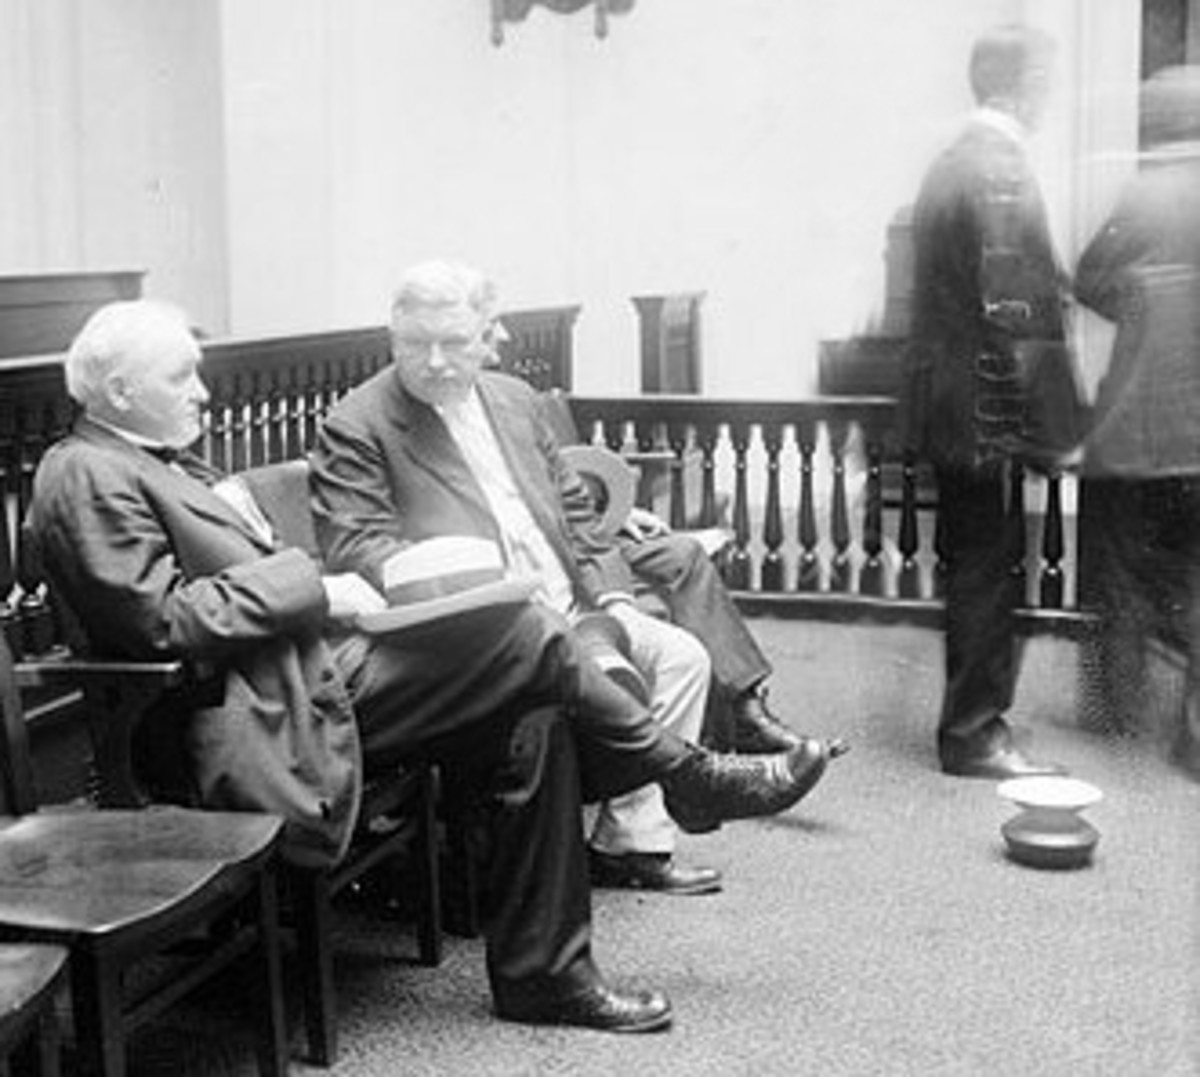 A spittoon is shown on the floor in a Chicago courthouse in 1910